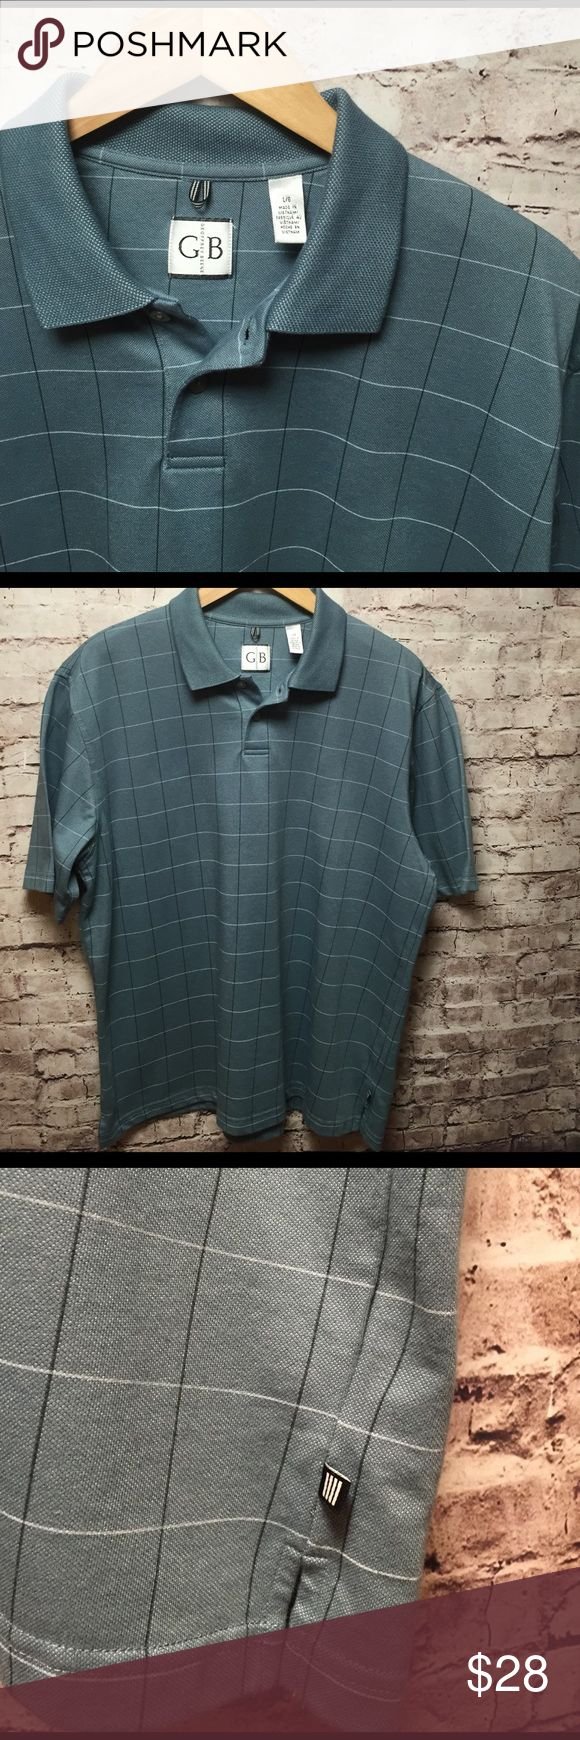 🆕 NWOT Men's GEOFFREY BEENE Polo Shirt 🆕 Men's GEOFFREY BEENE Polo Shirt ... NWOT! Colors are white black and teal blue! Geoffrey Beene Shirts Polos